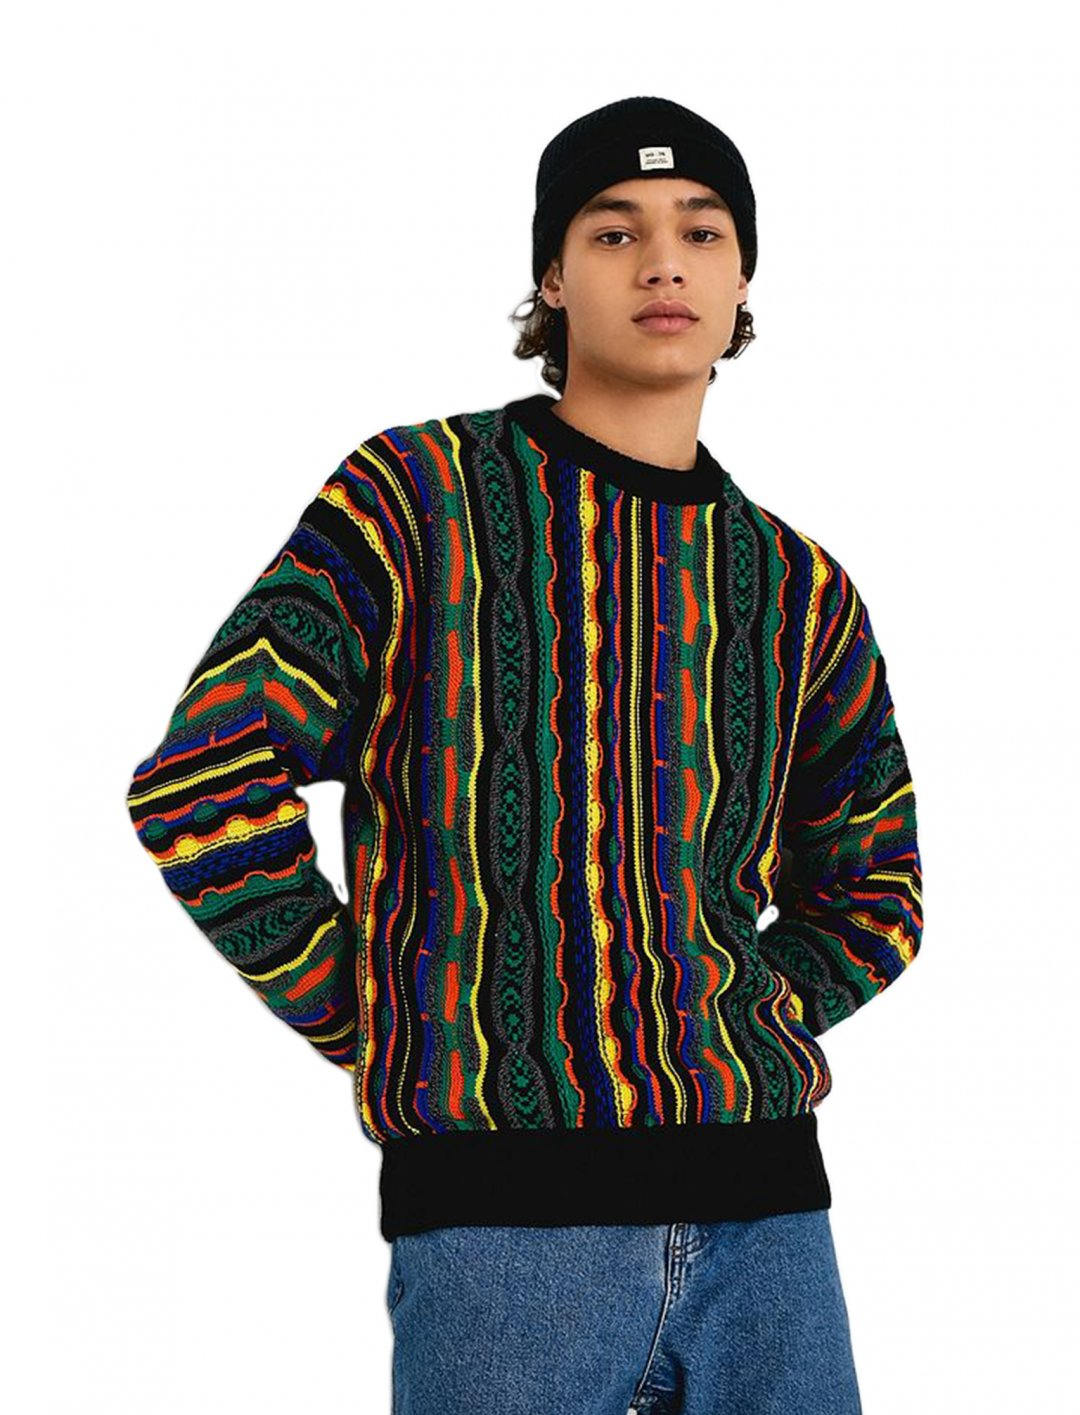 Jamaal's Jumper Clothing Urban Outfitters